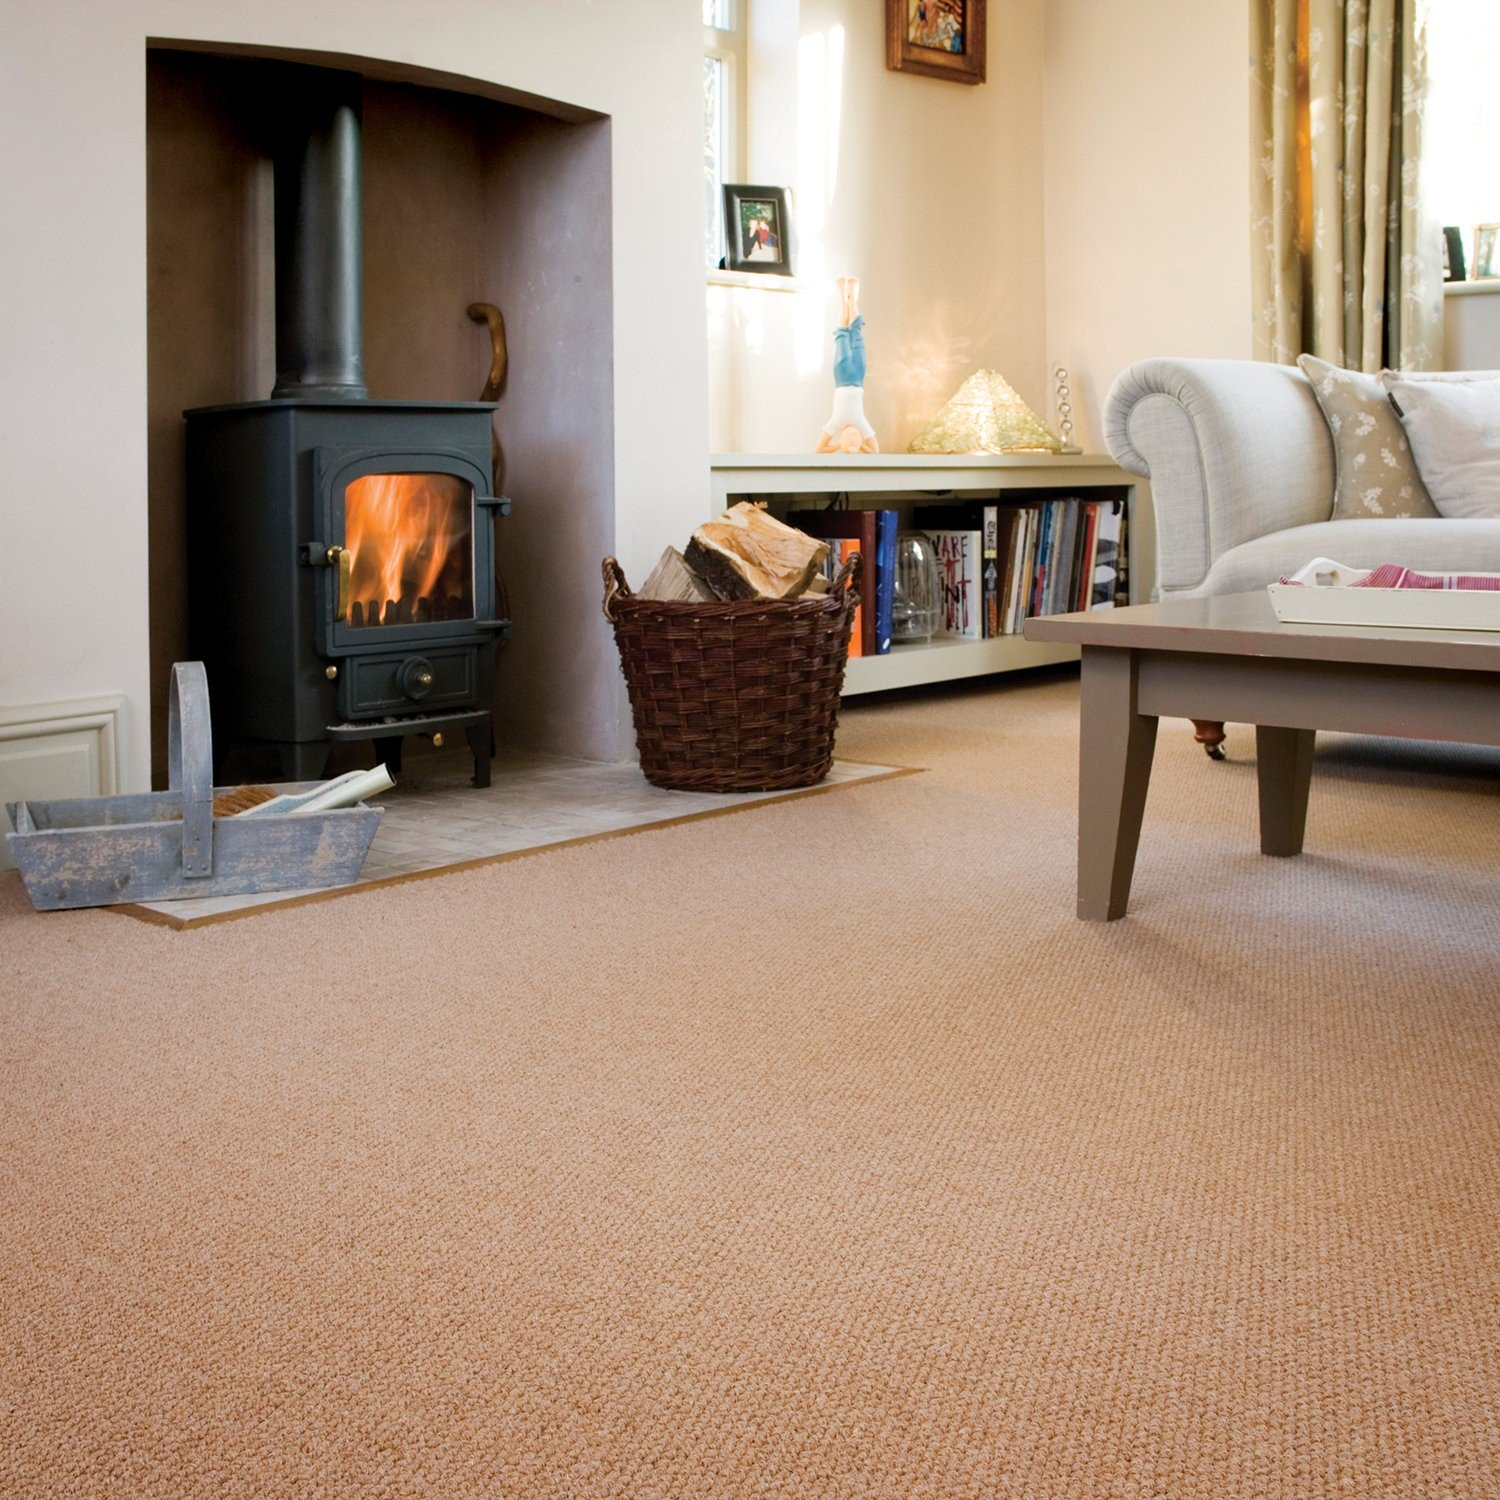 new carpet ideas berber carpet colors design ideas BOBUFIE